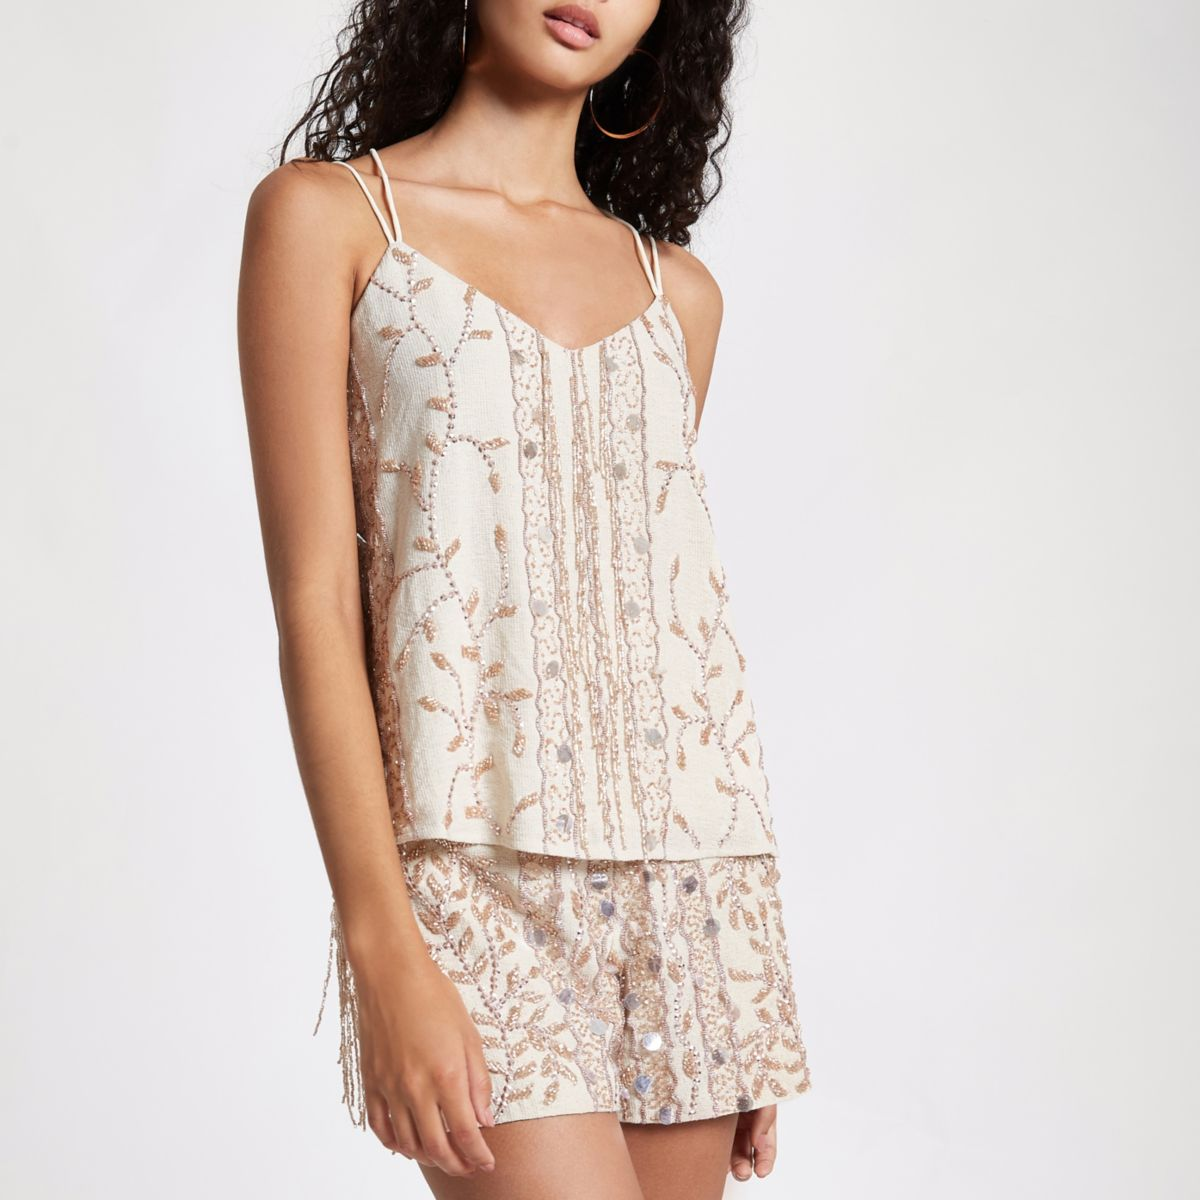 Cream Sequin Embellished Cami Top by River Island